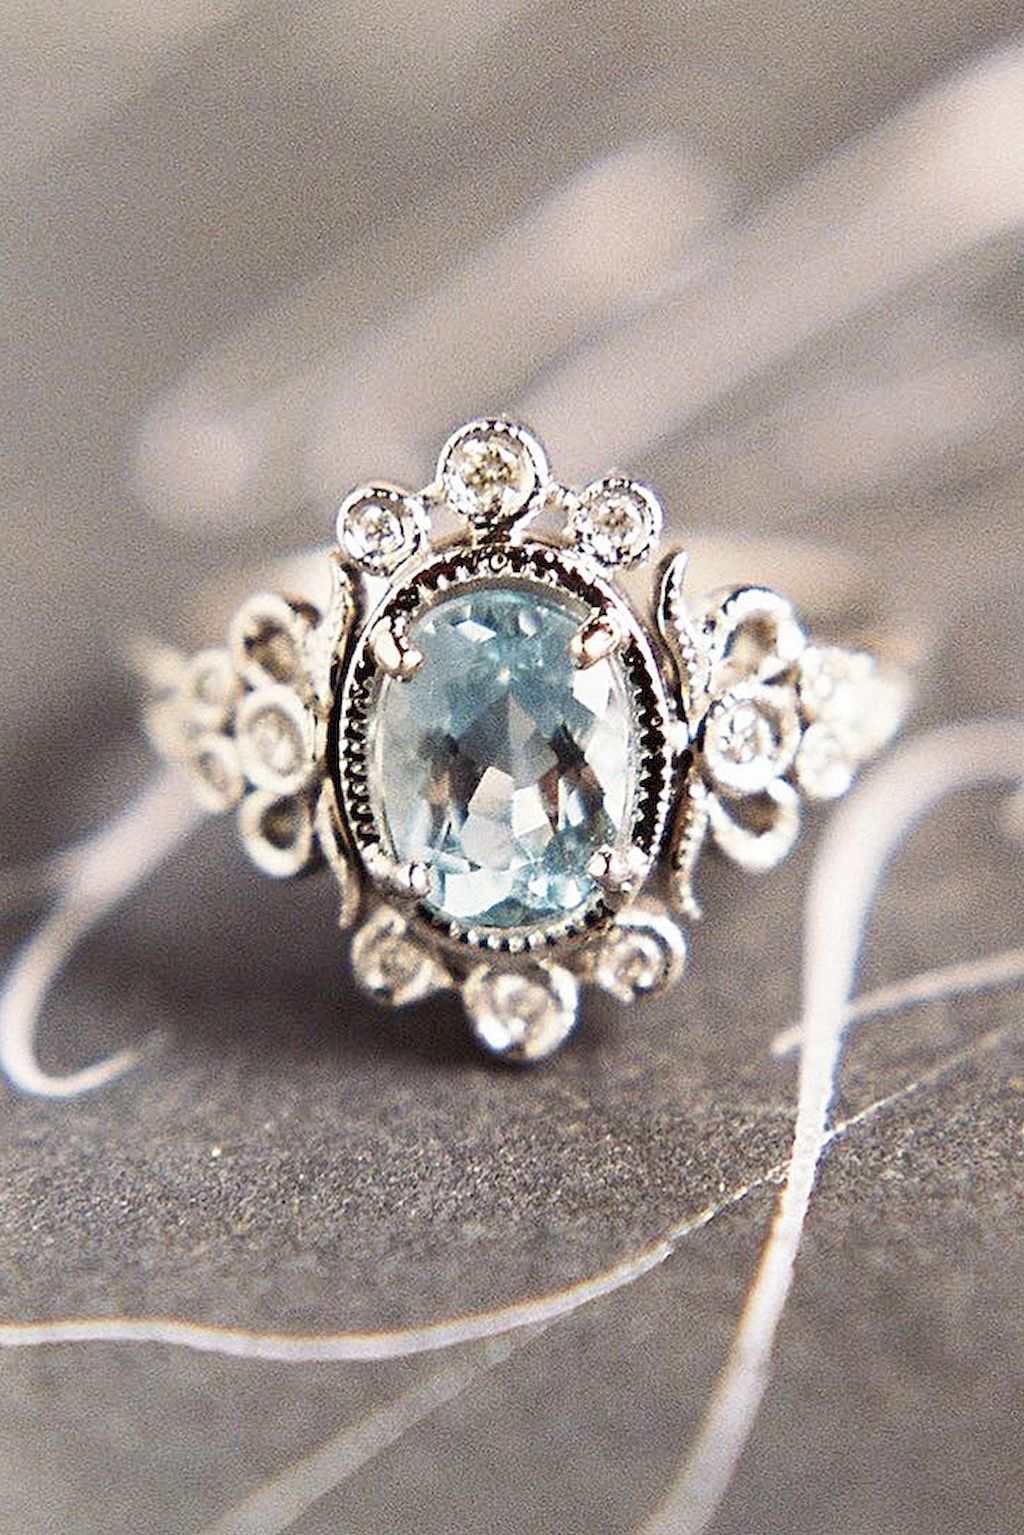 Cool 82 Cushion Cut Vintage Engagement Ring Bitecloth 2017 Beautiful Wedding RingsBeautiful